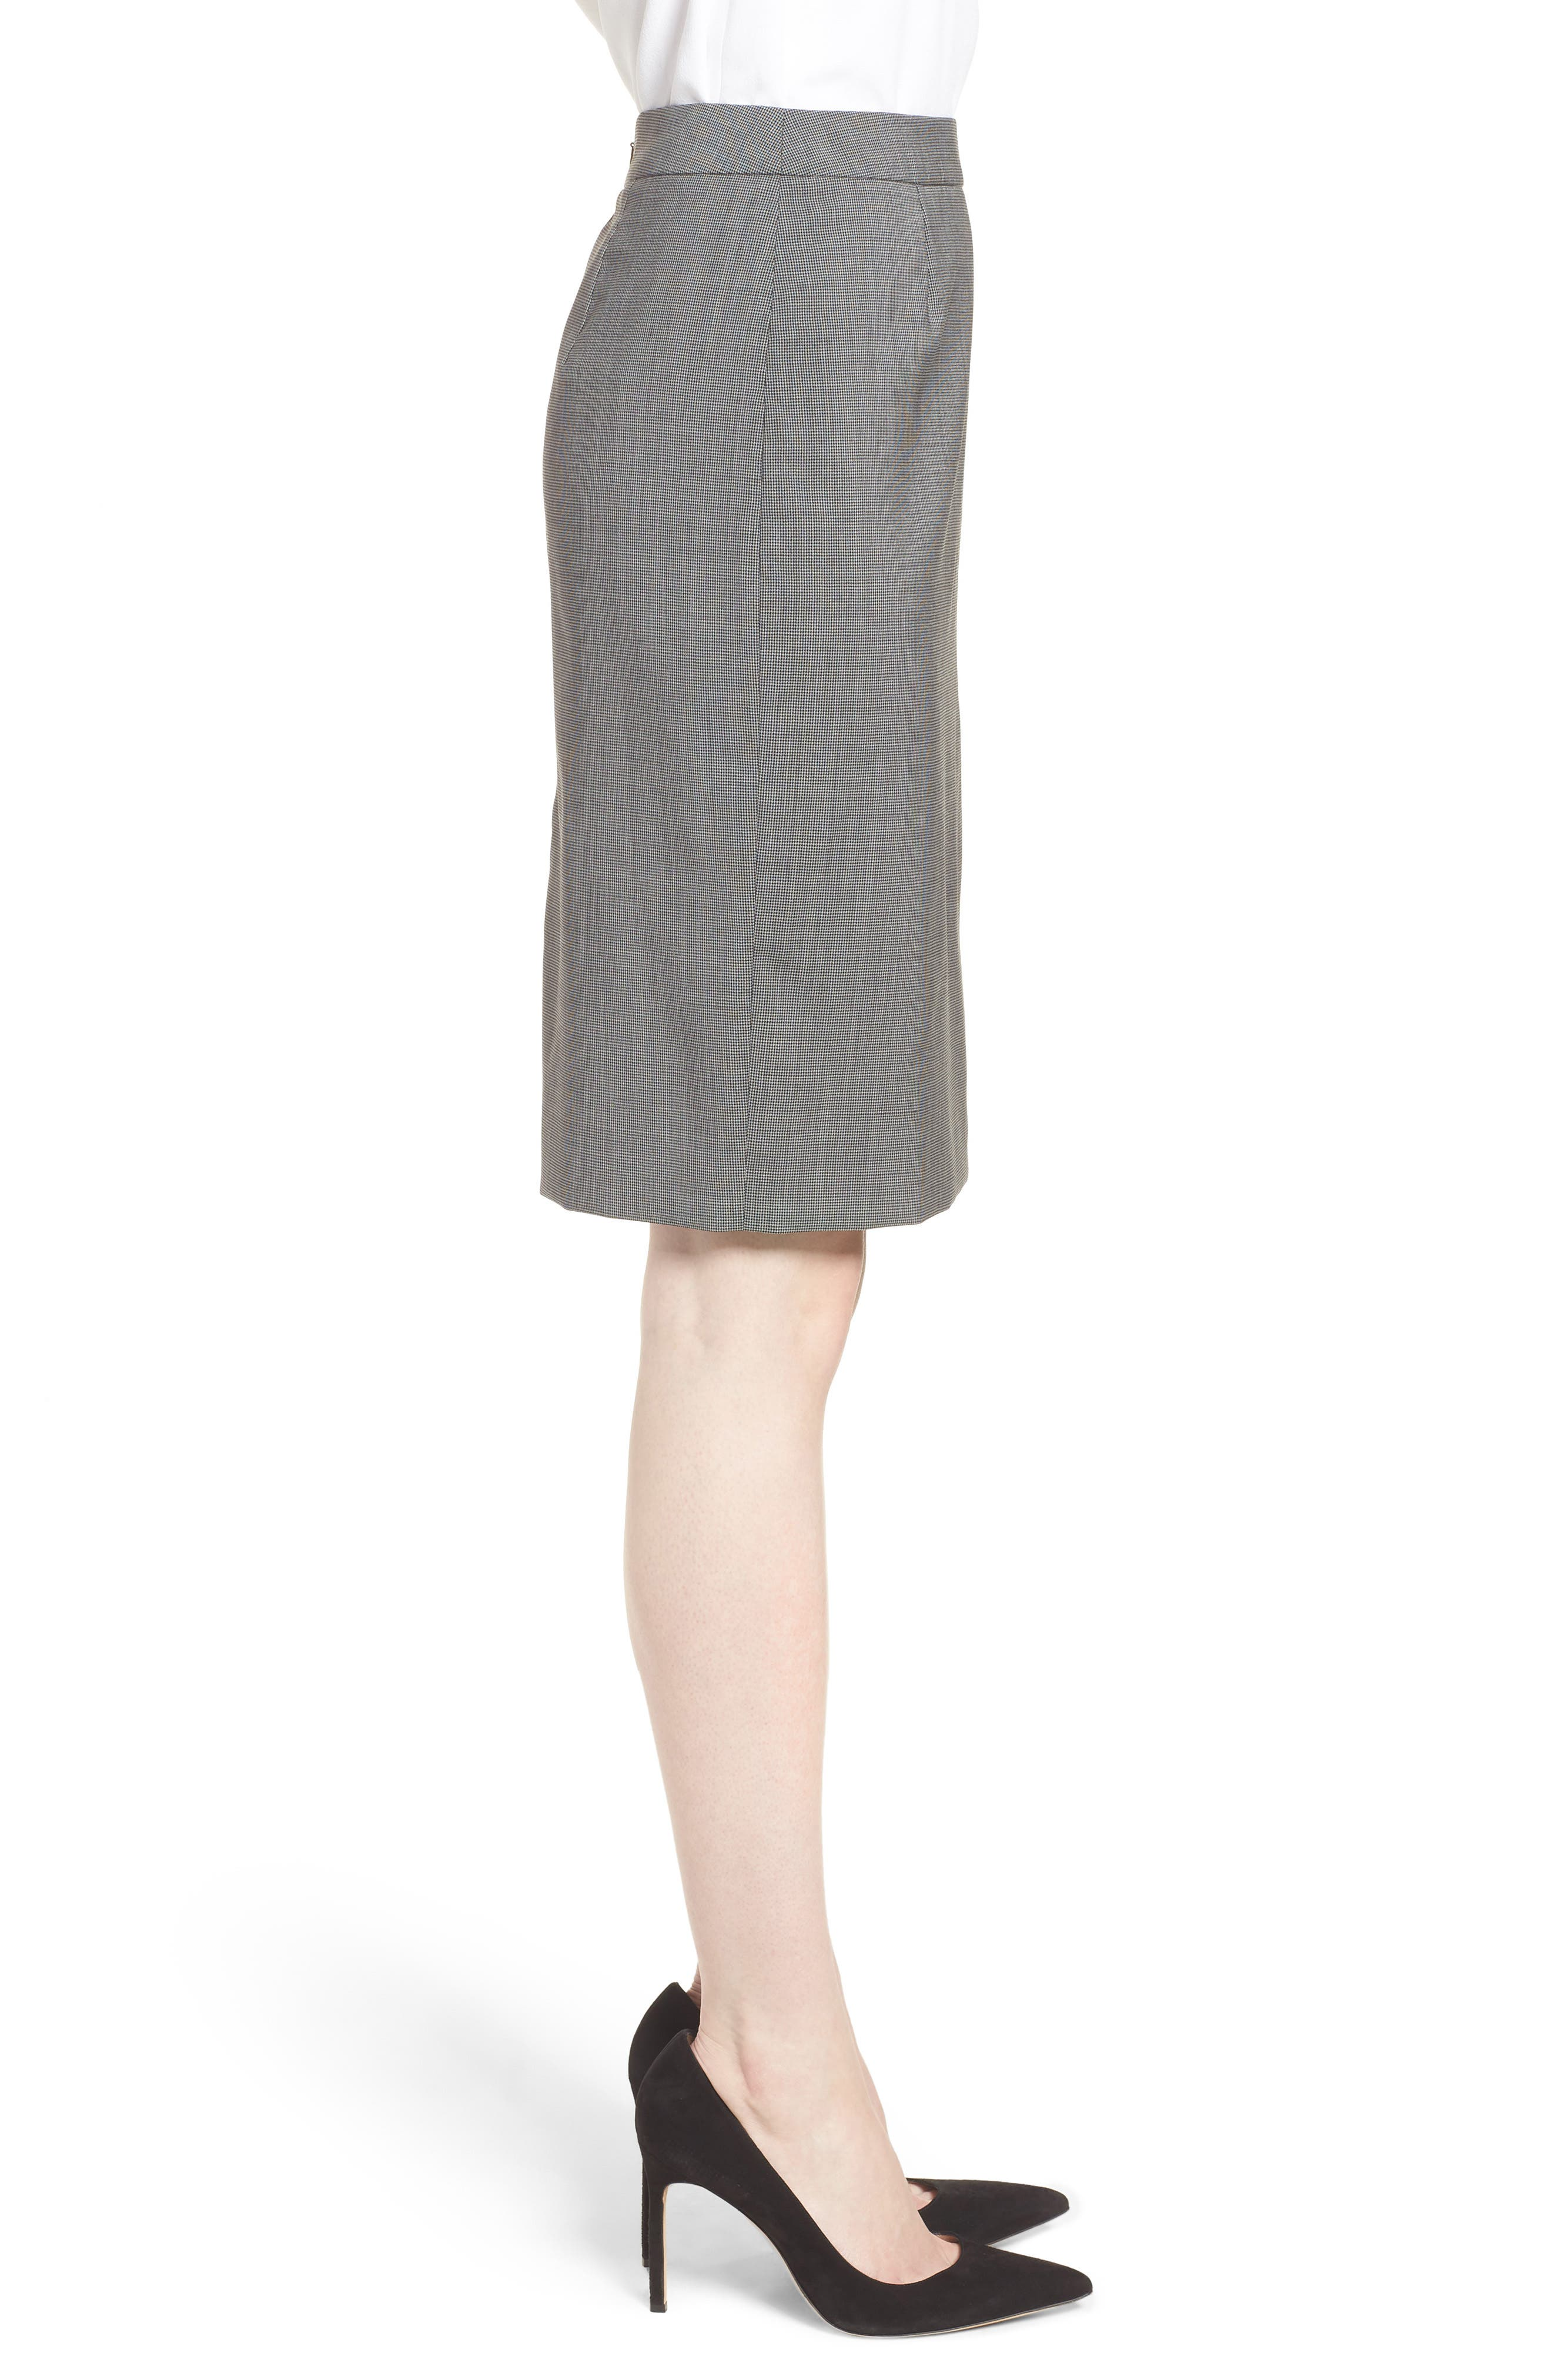 Vimena Mini Houndstooth Stretch Wool Pencil Skirt,                             Alternate thumbnail 3, color,                             060